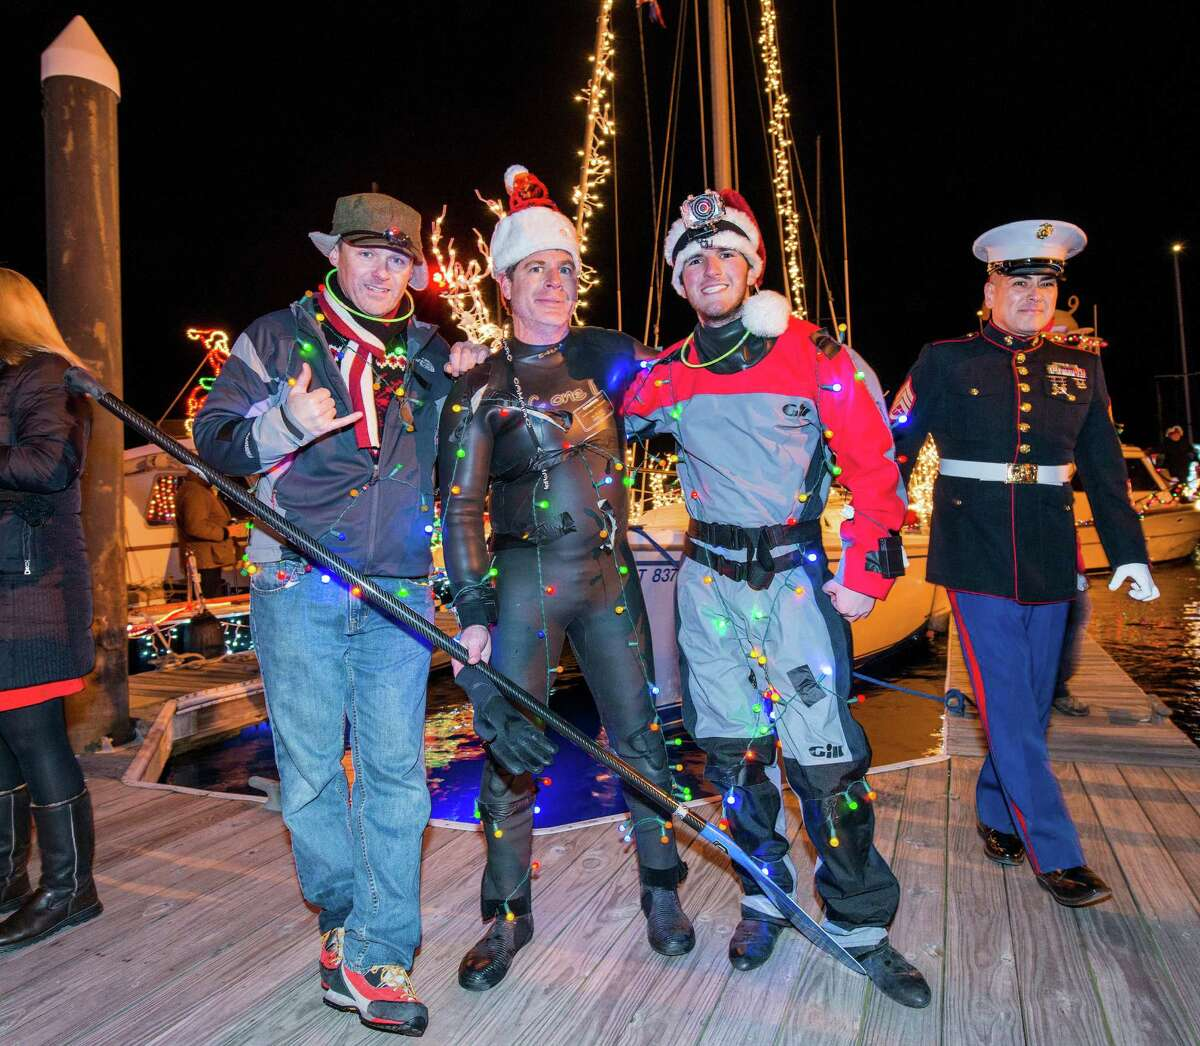 Left to right; Jack Eagen, Michael Pensiero, and Michael Barnaba pose for a photo on the docks next to the Crab Shell restaurant, Stamford, CT. The three participated in the annual Thanksgiving weekend Stamford Harbor Parade of Lights on their paddle boards.